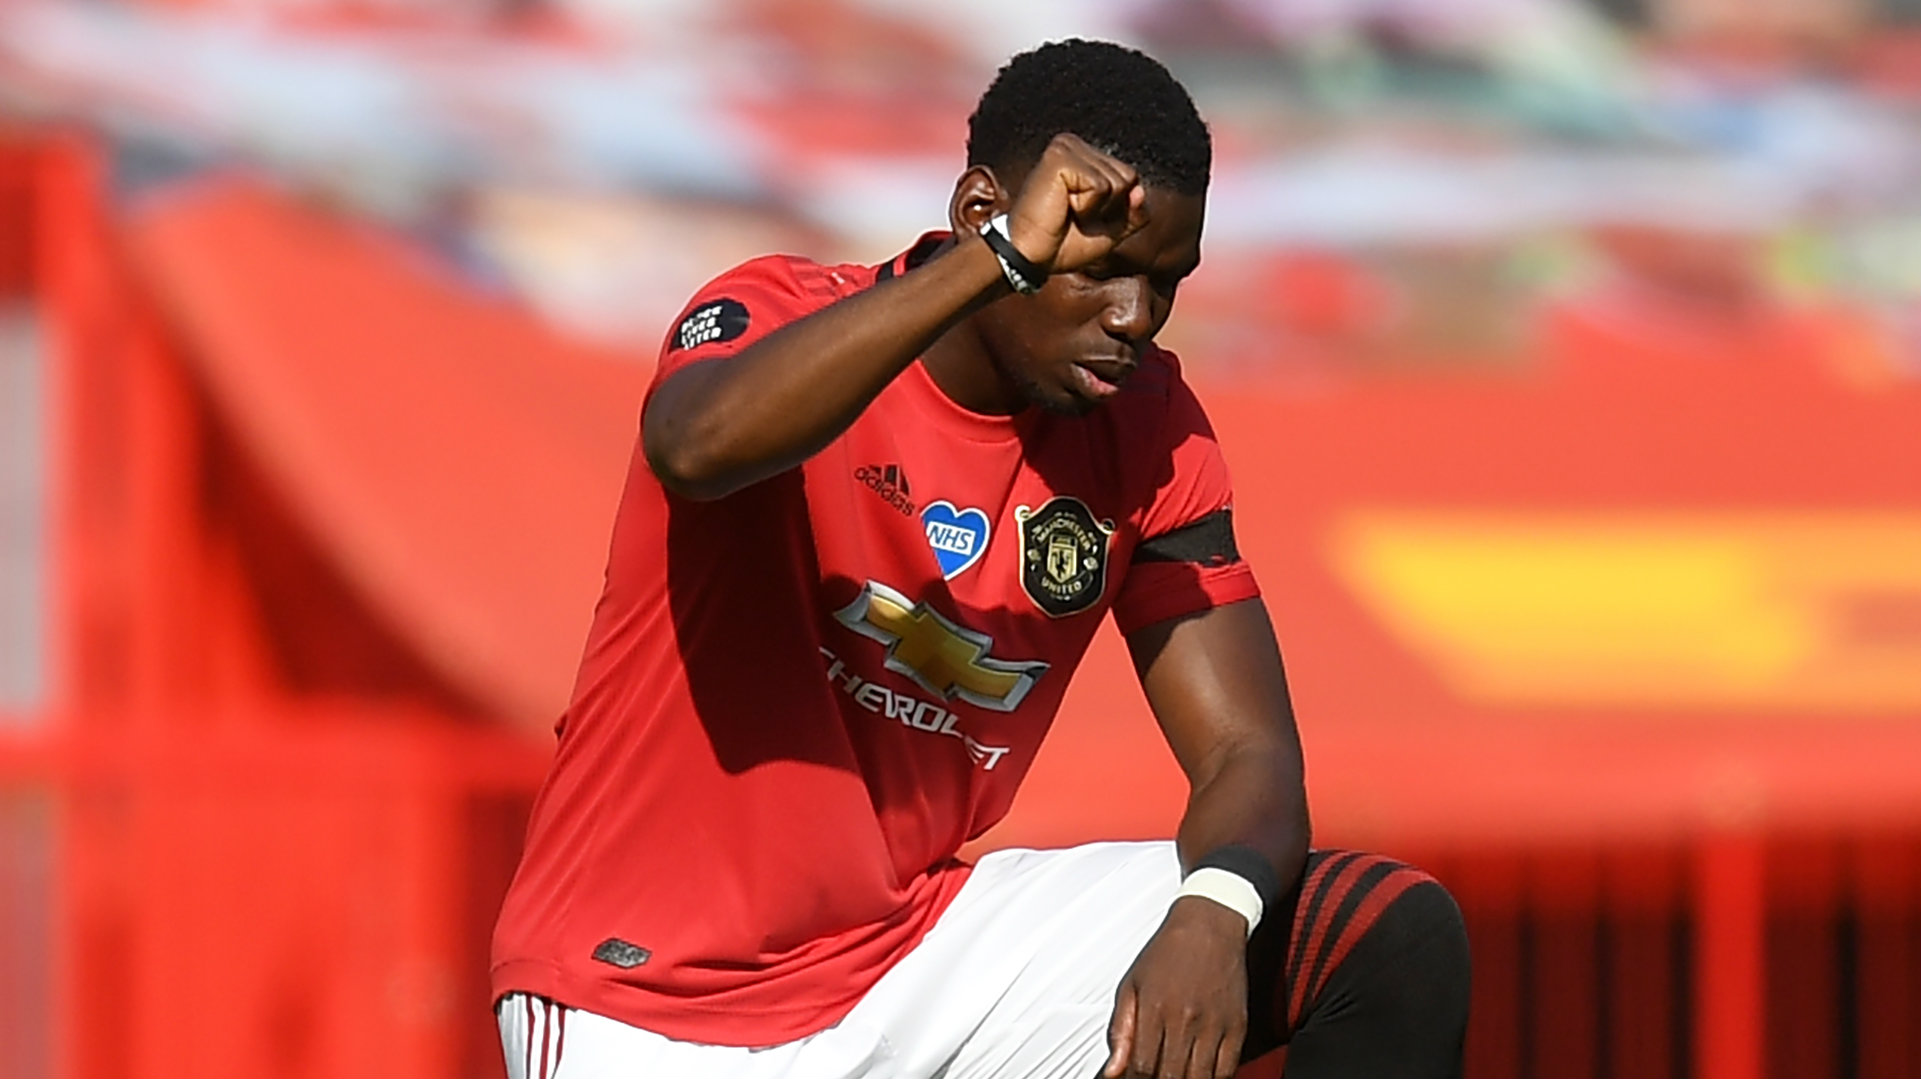 'Pogba can get Man Utd competing for titles if he adds consistency to his game' - Keane talks up 'talented' midfielder